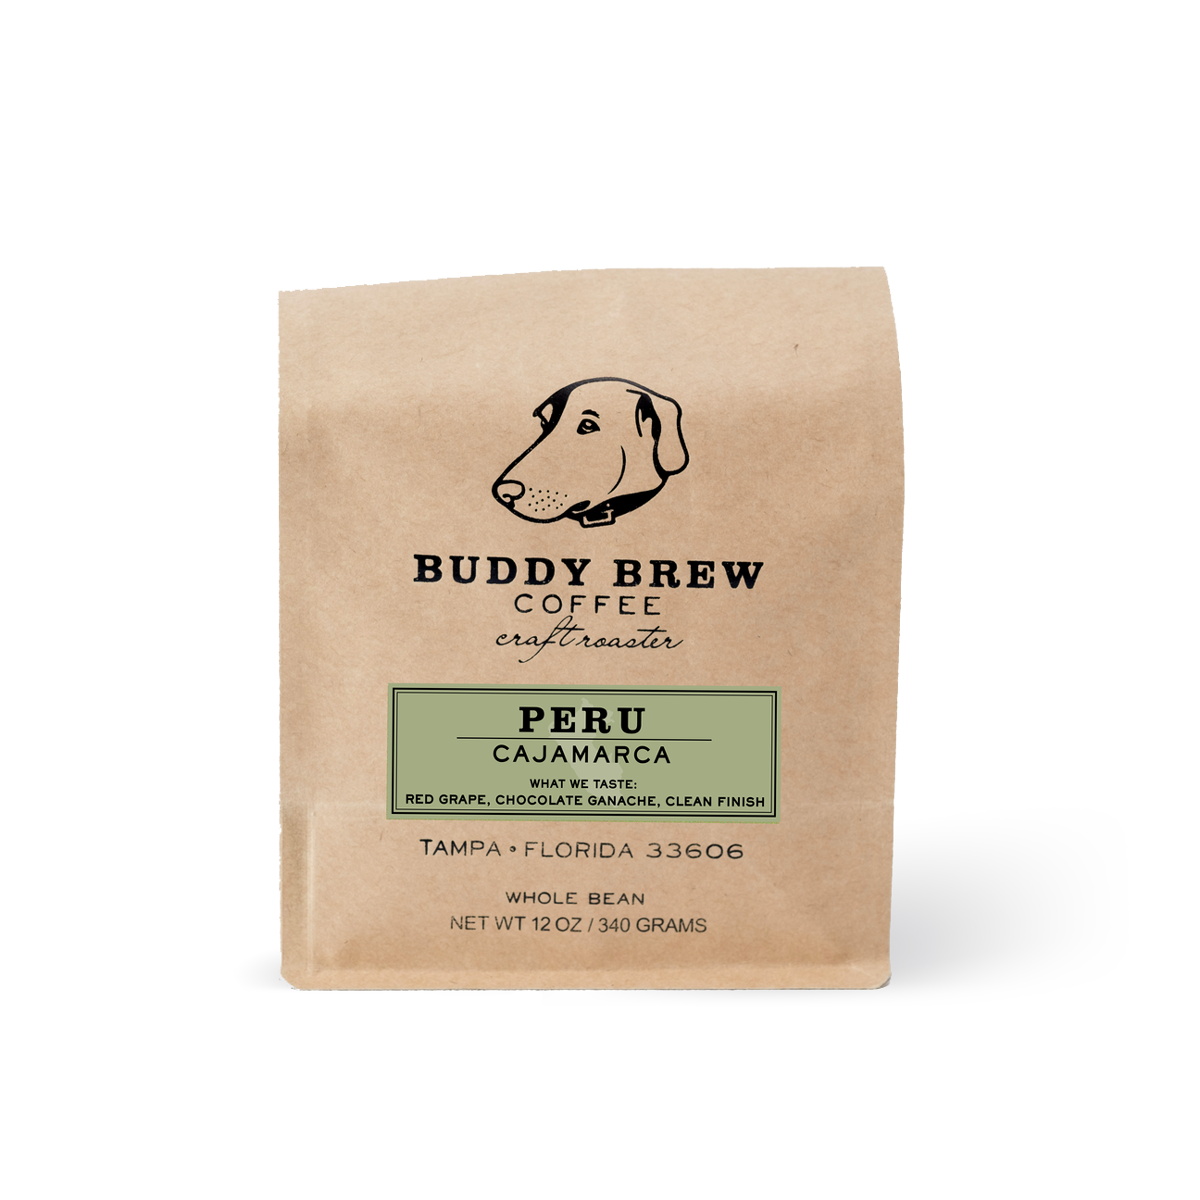 Buddy Brew Coffee Peru Cajamarca Whole Bean